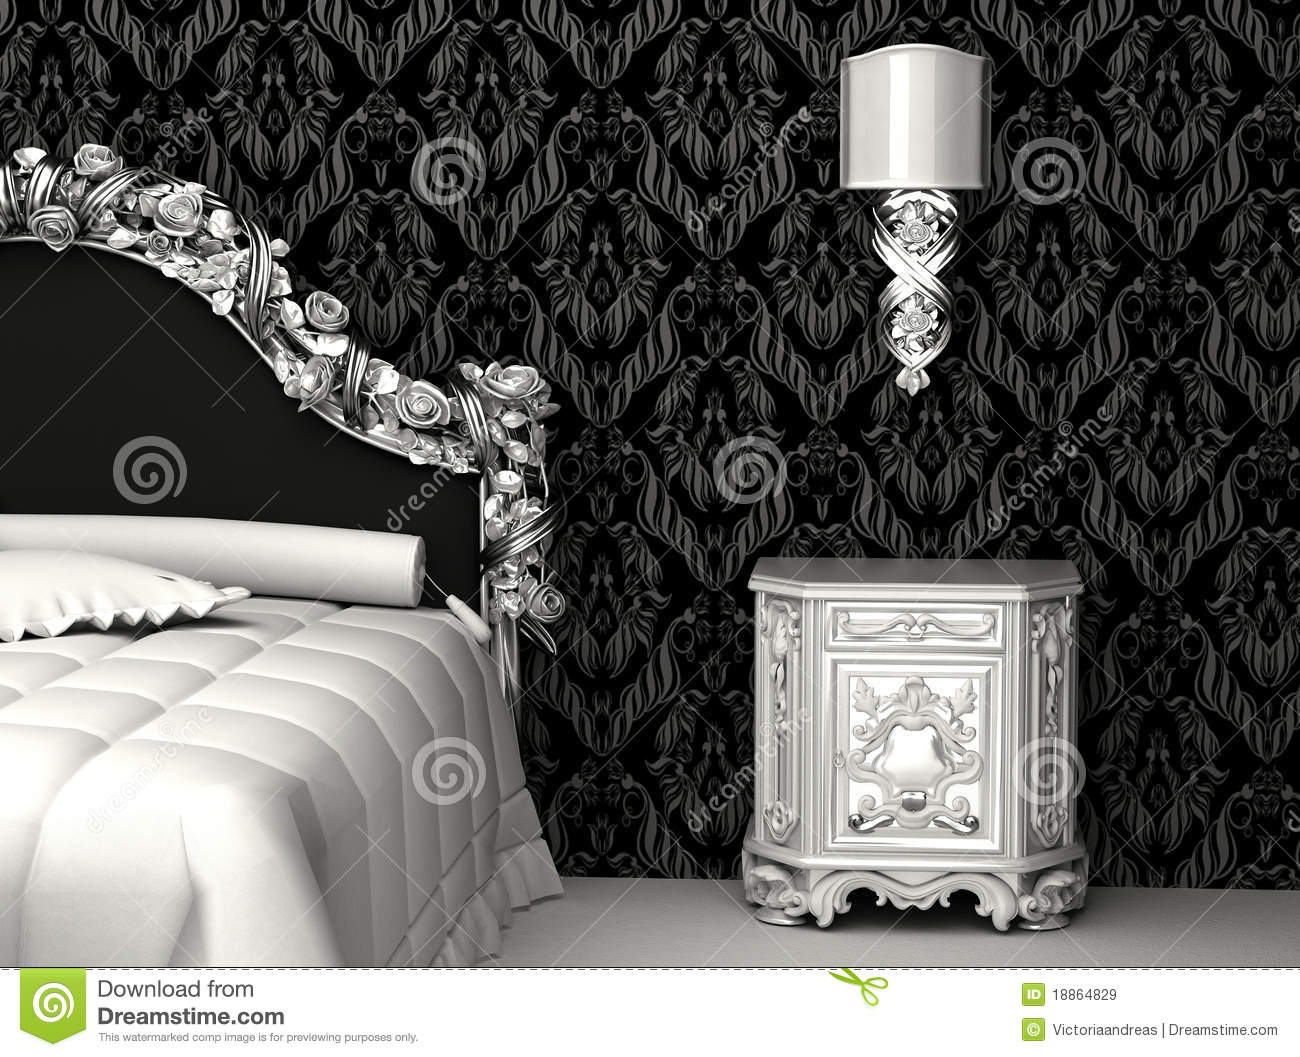 Are not black baroque bed valuable